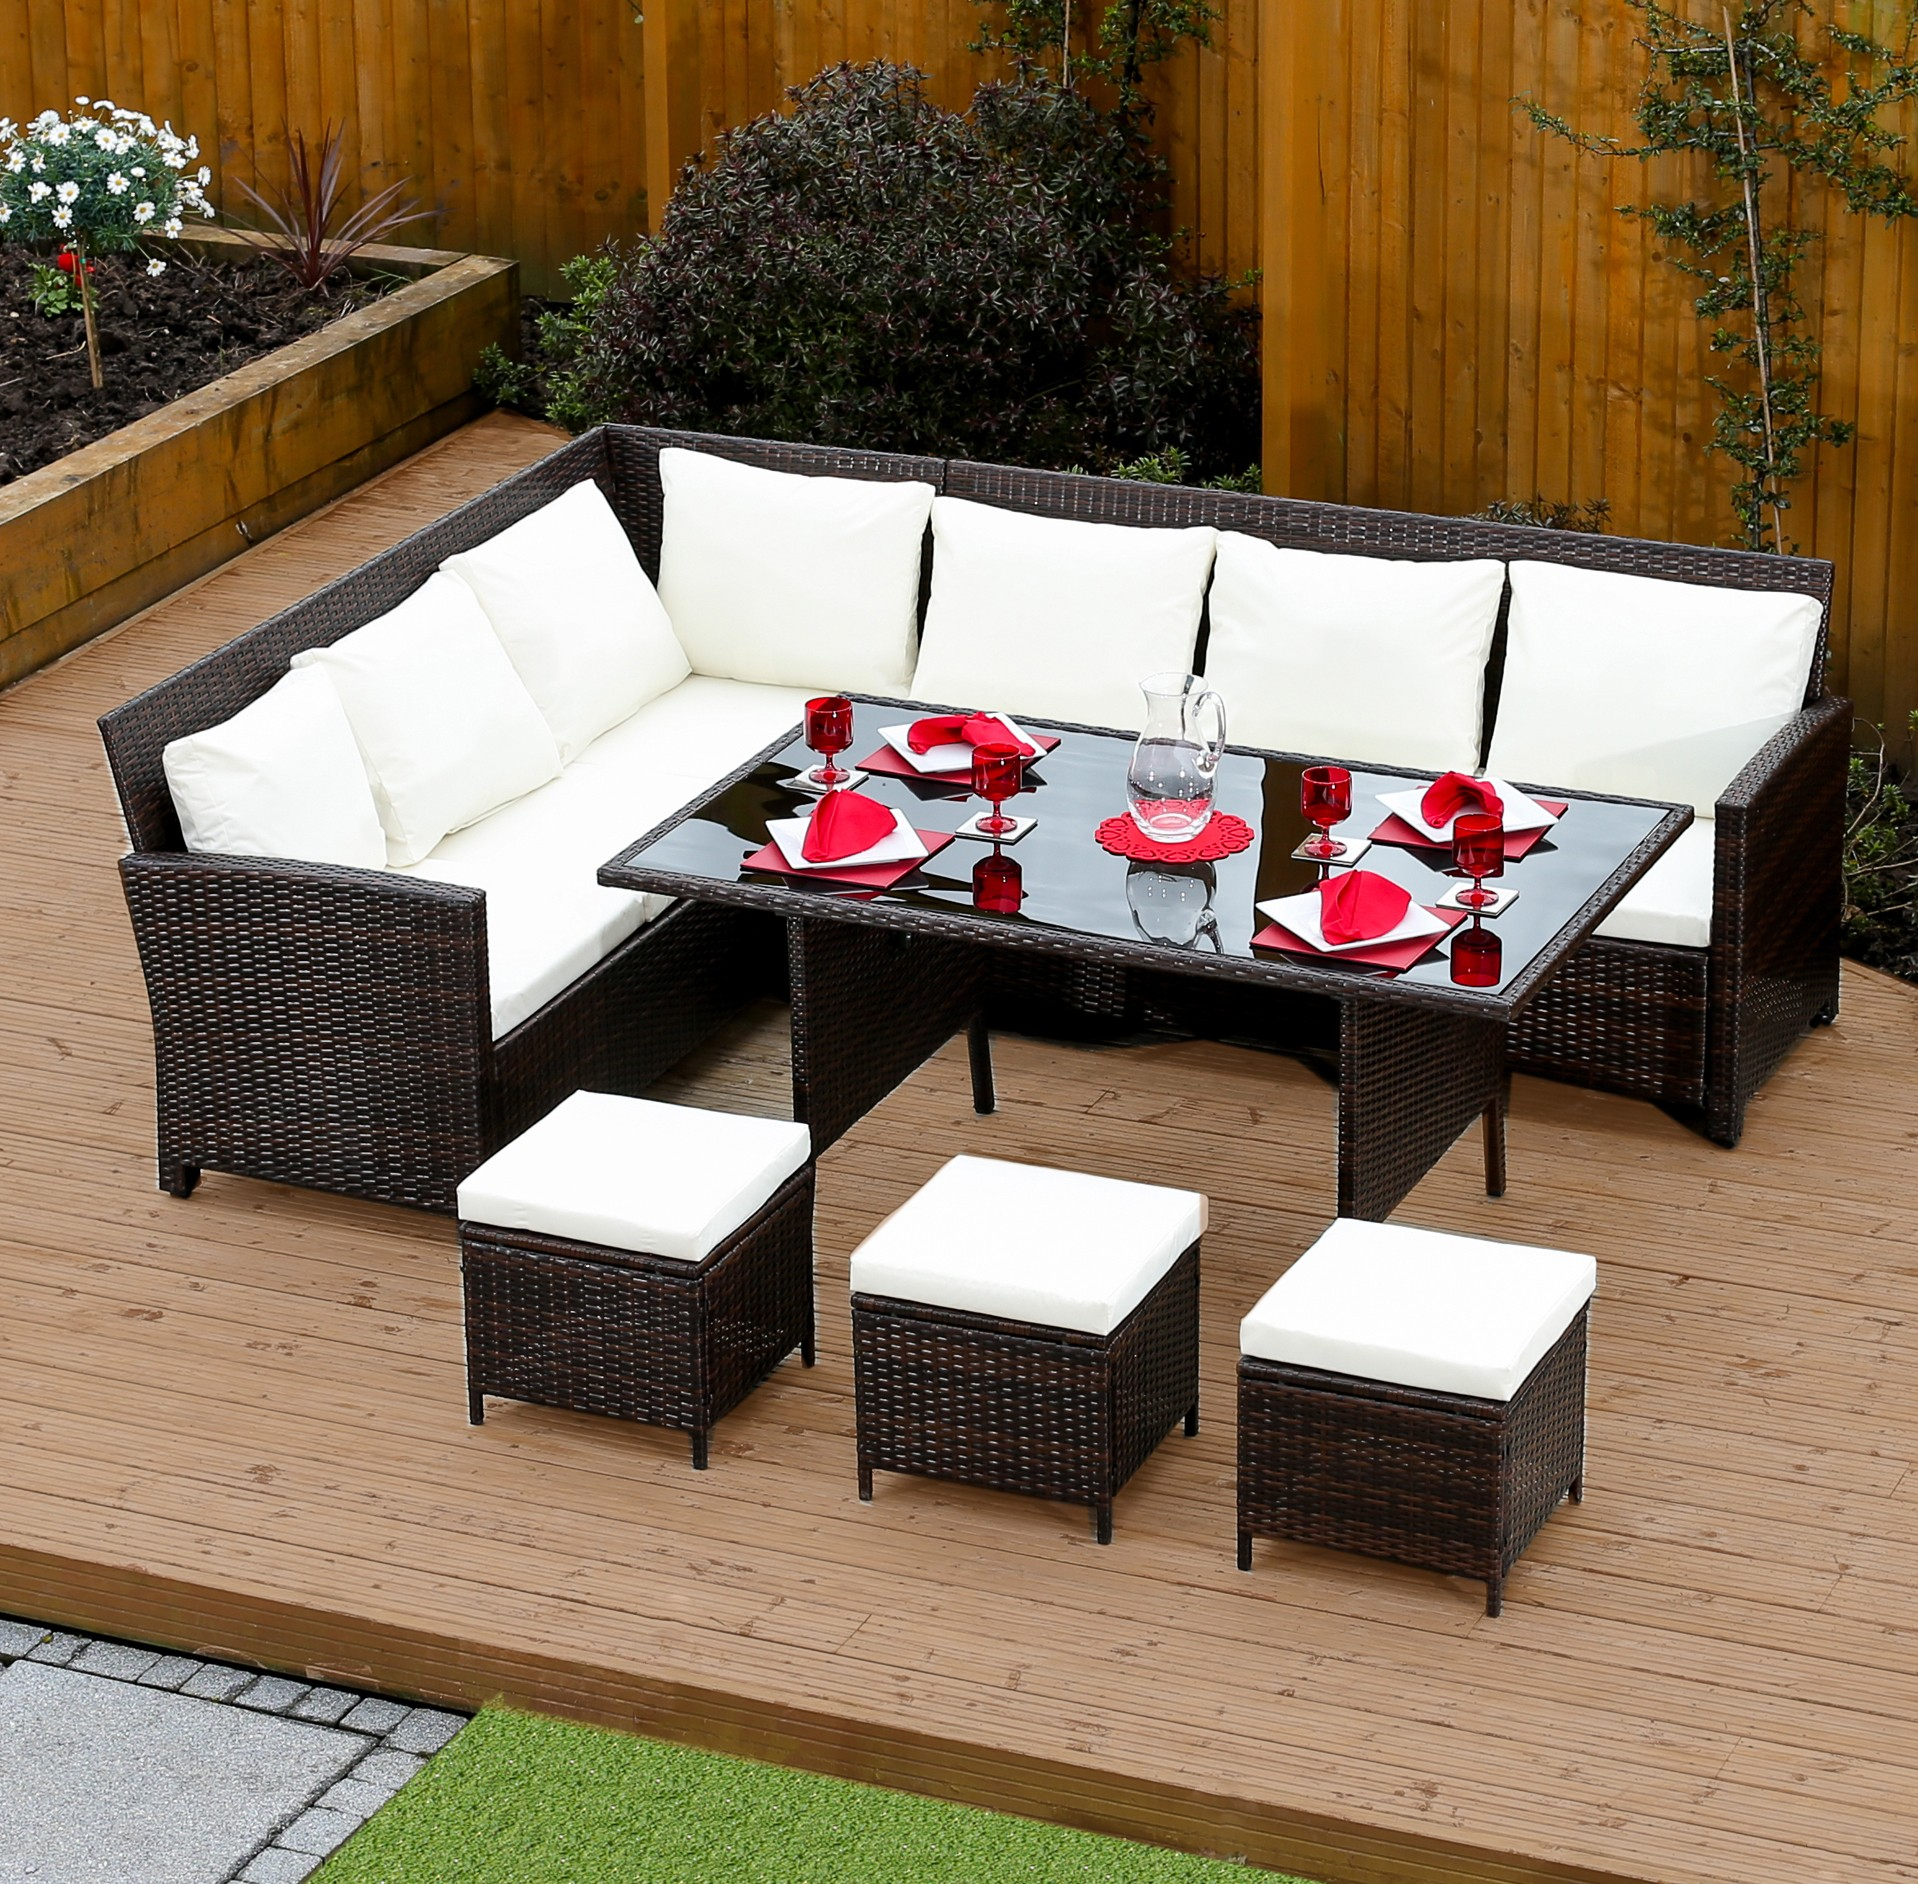 9 seater rattan corner garden sofa dining table set in brown with light cushions - Garden Furniture Table And Chairs